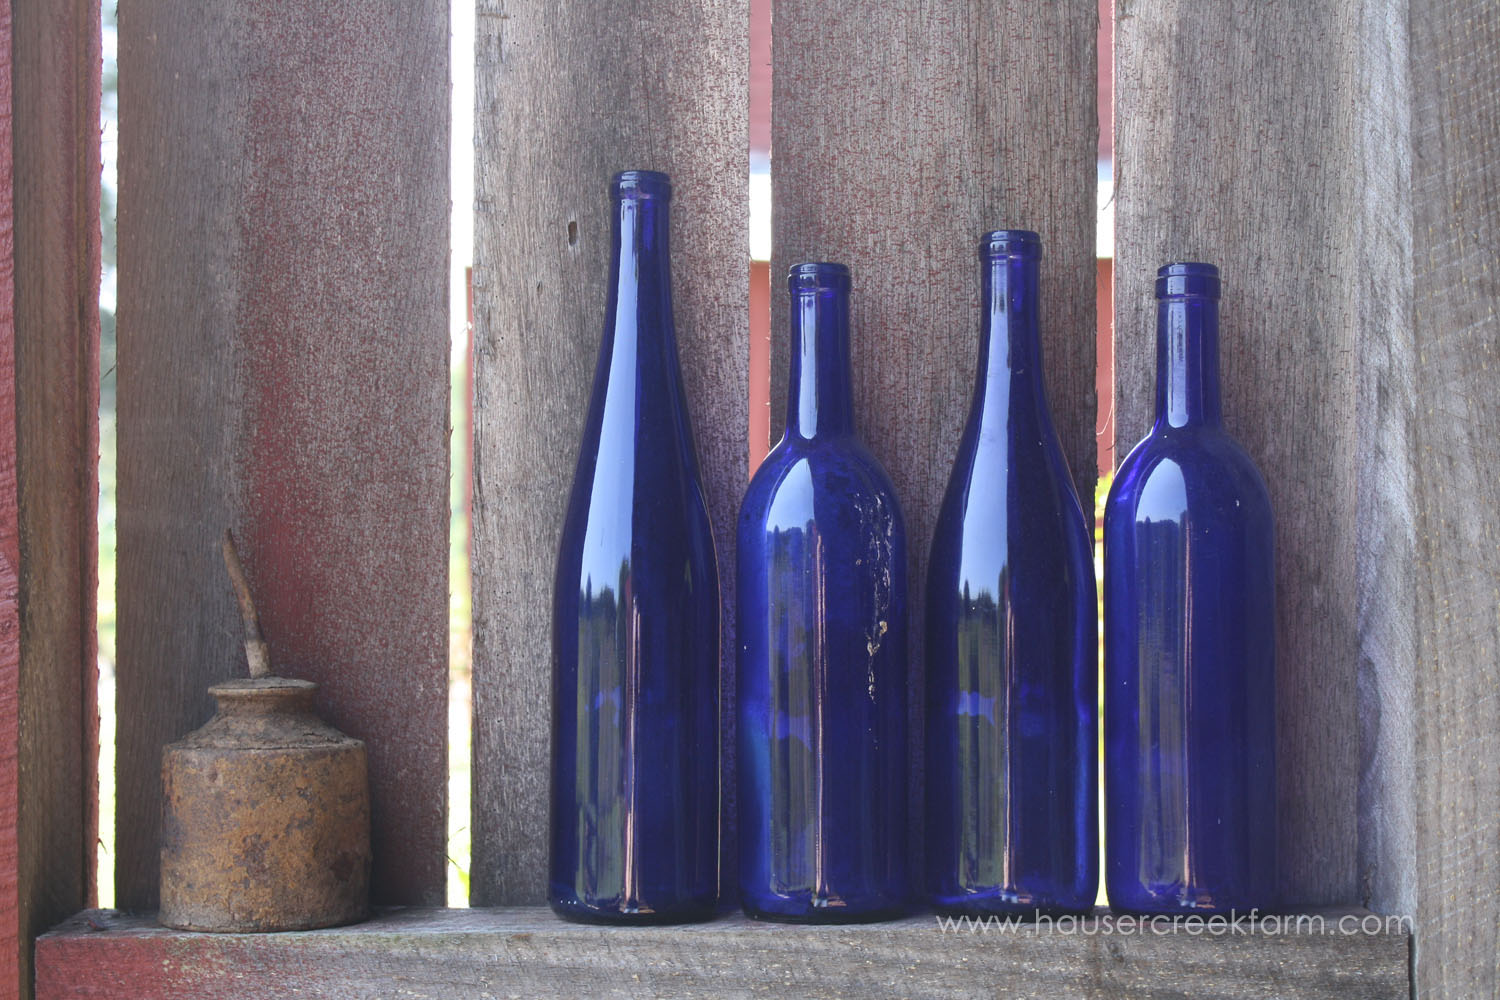 Four cobalt blue gss bottles by antique oil can on shelf in barnla